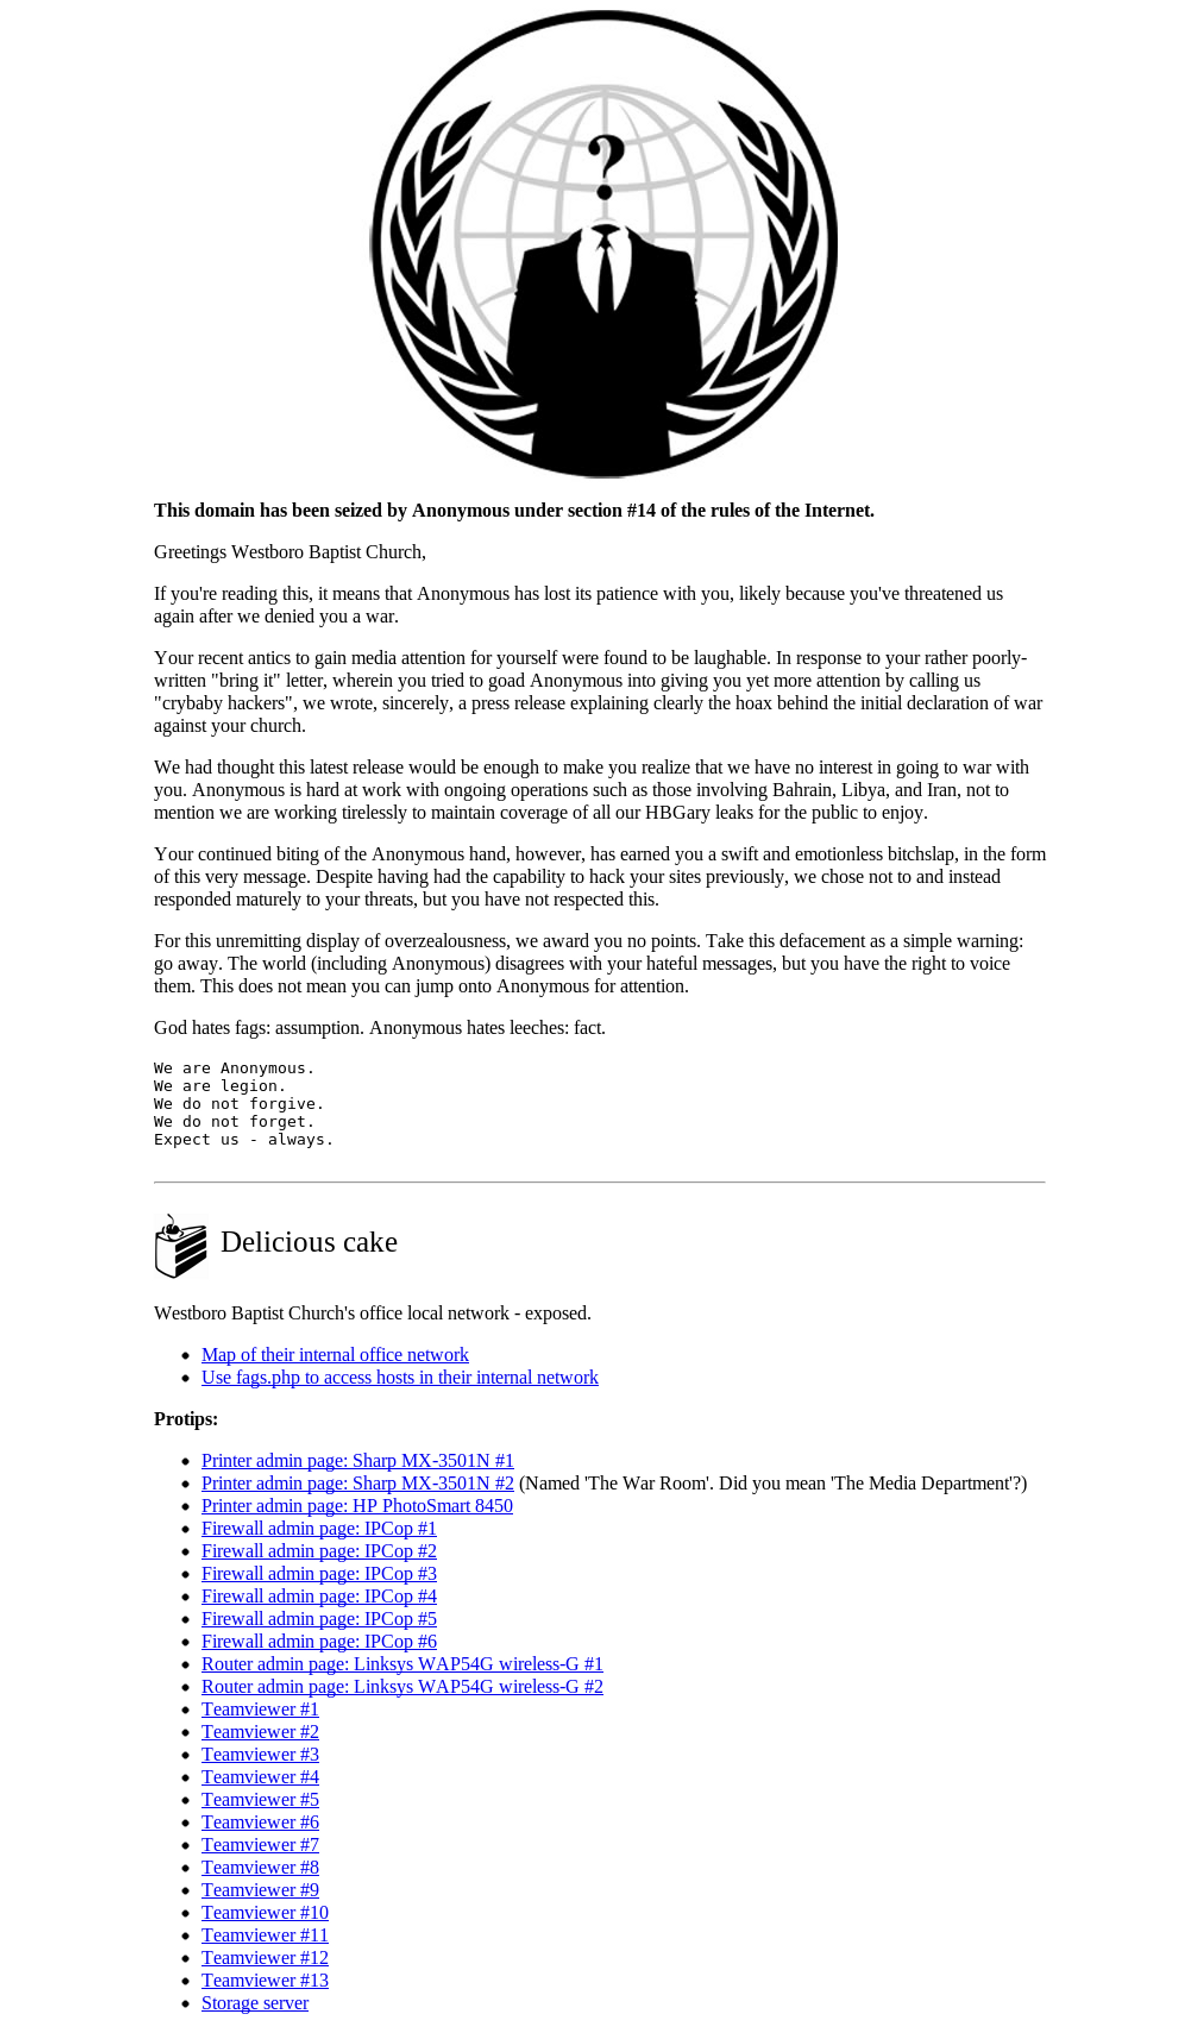 A warning notice issued by Anonymous to the Westboro Baptist Church